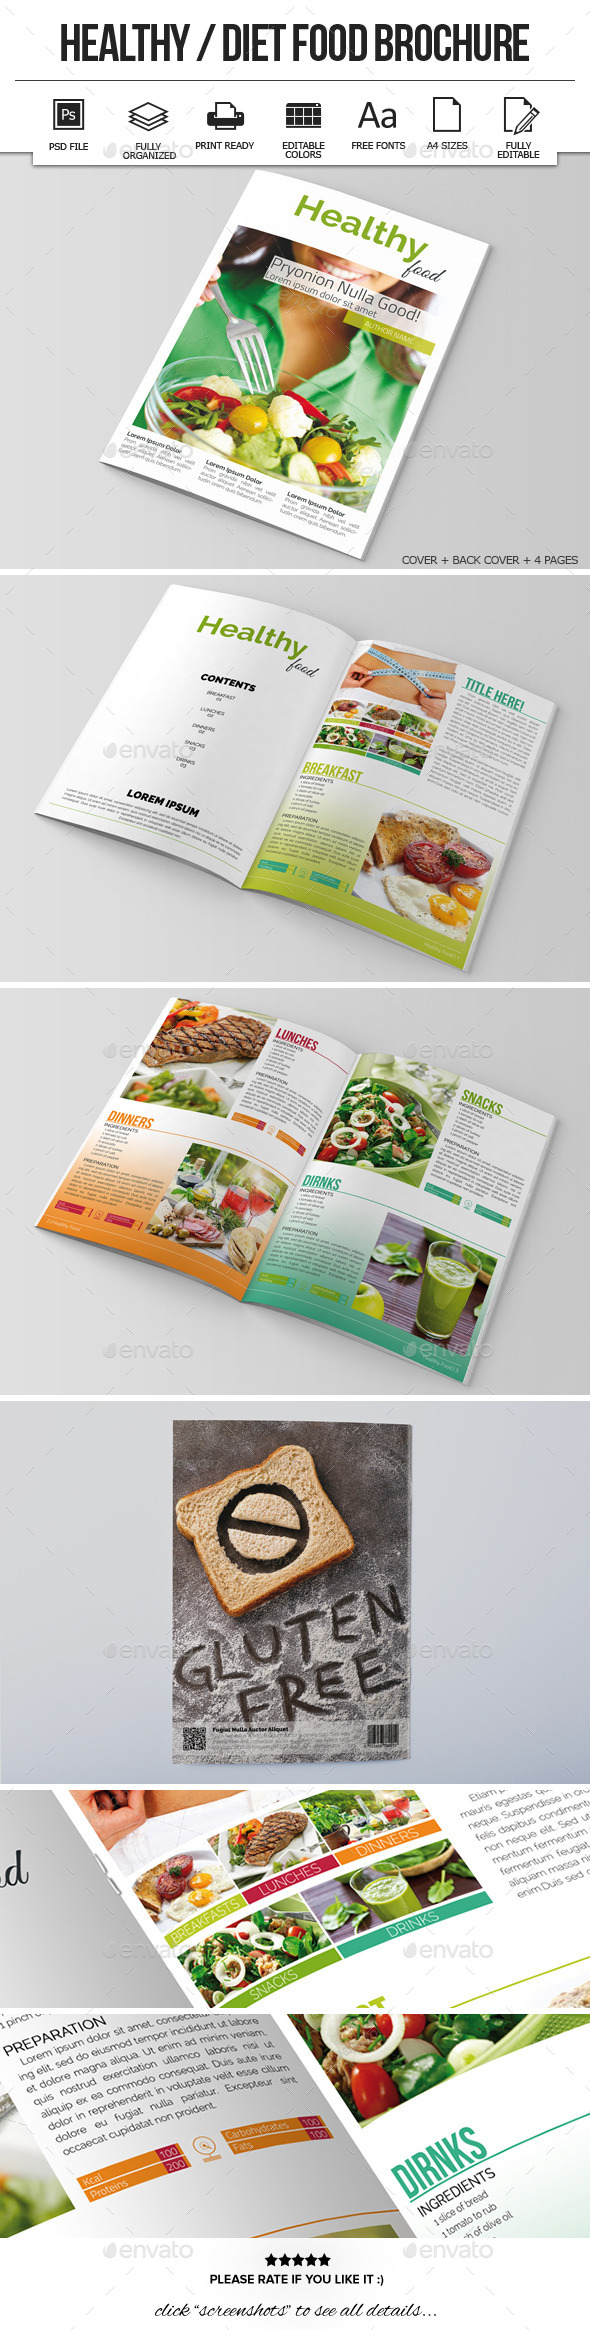 free food brochure templates - healthy diet food brochure template graphicriver